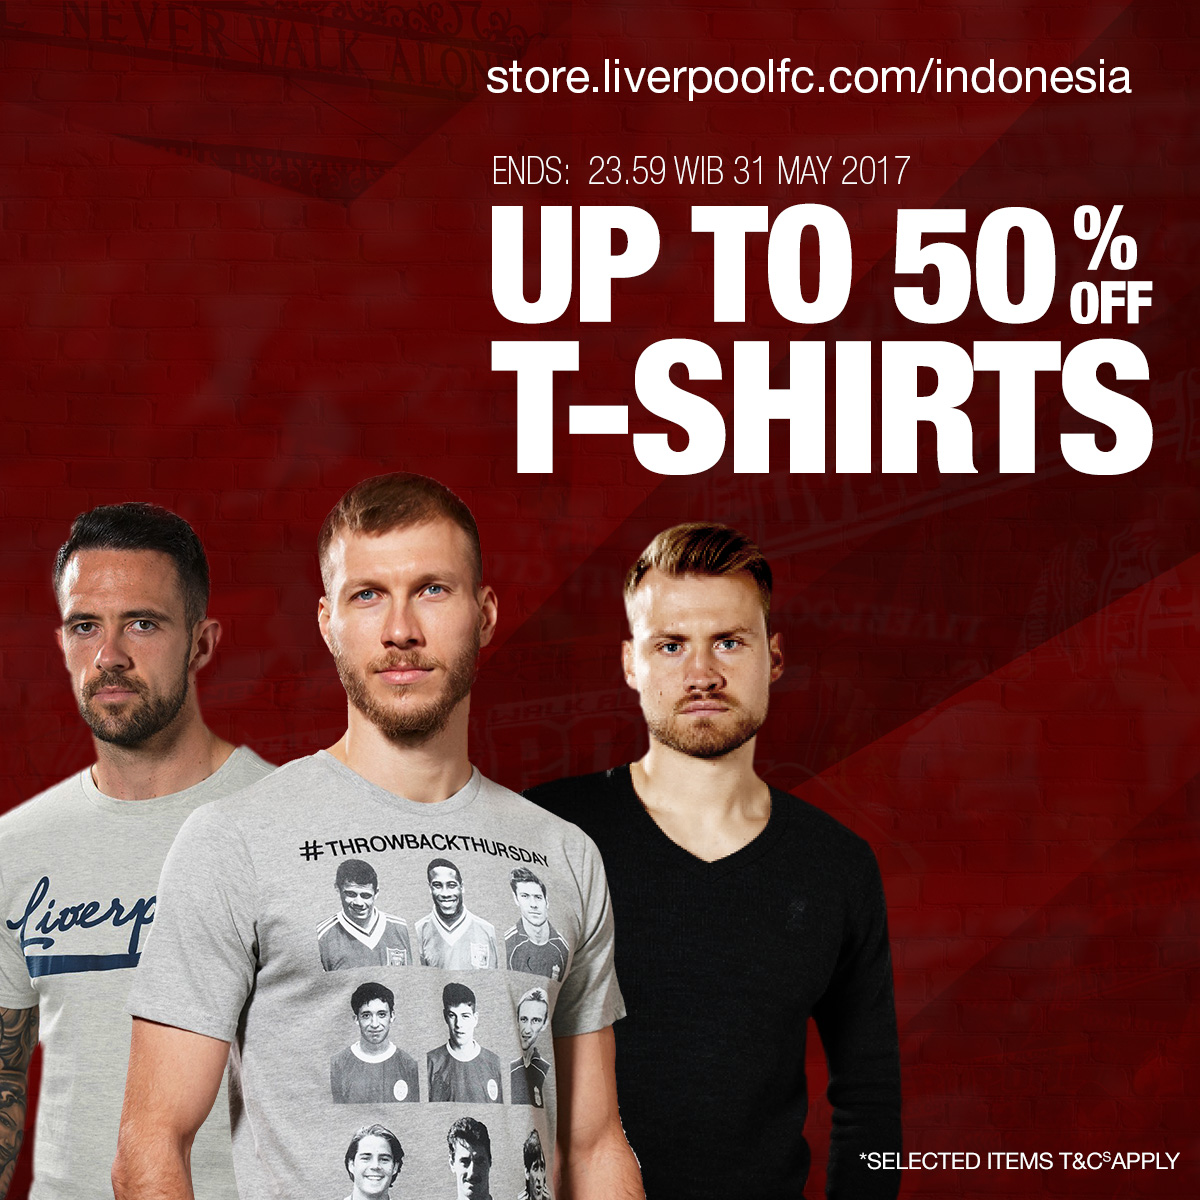 LFC-T-shirt-Disc-UP-50-promotion-cover